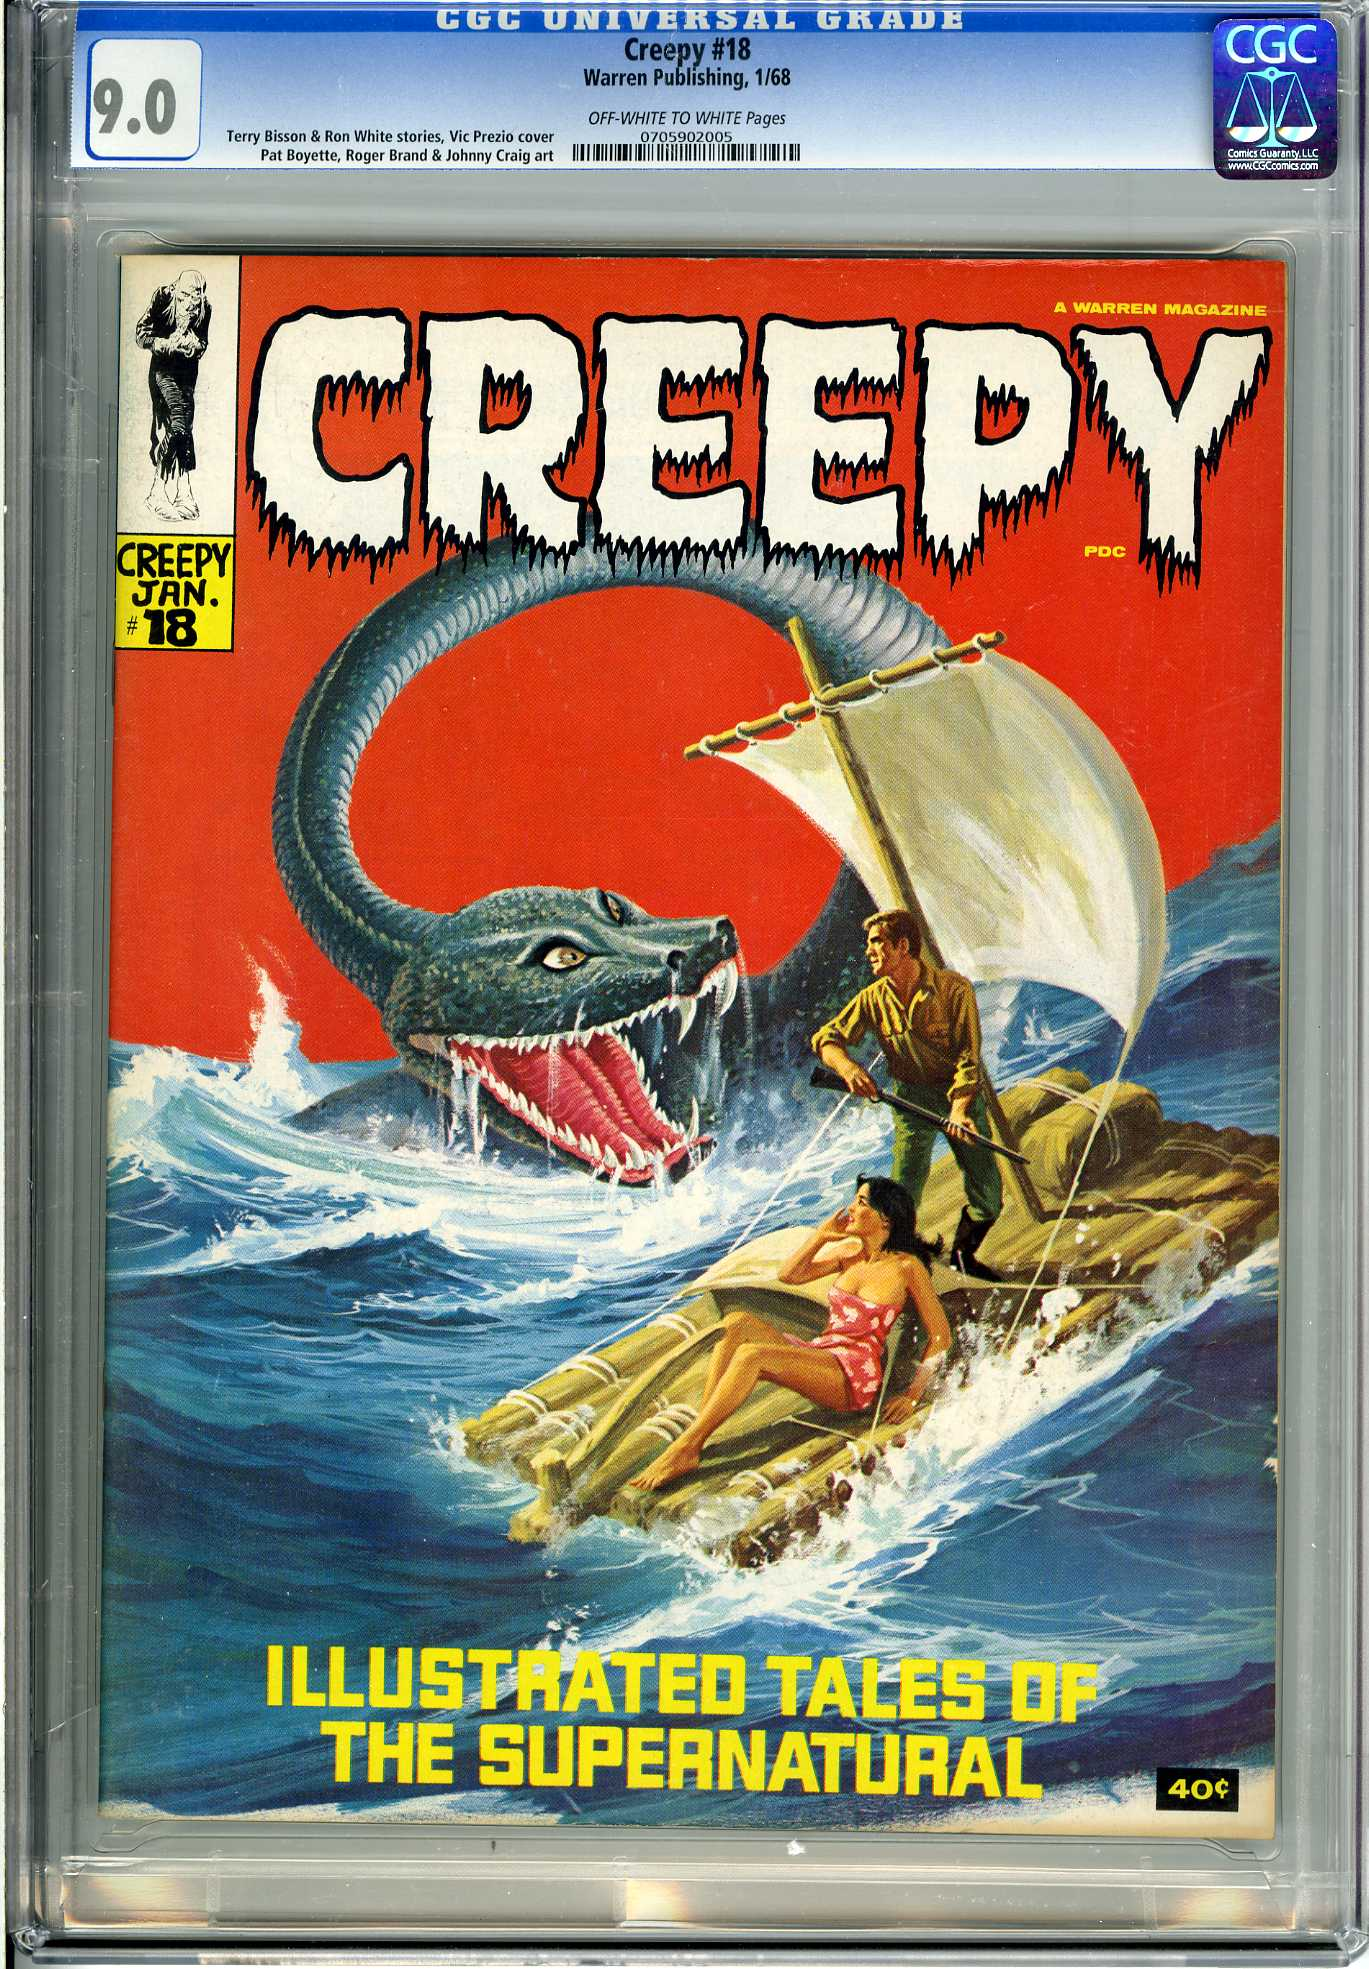 CREEPY #18 (1968) CGC VF/NM 9.0 - OWW Pgs - SUPERNATURAL